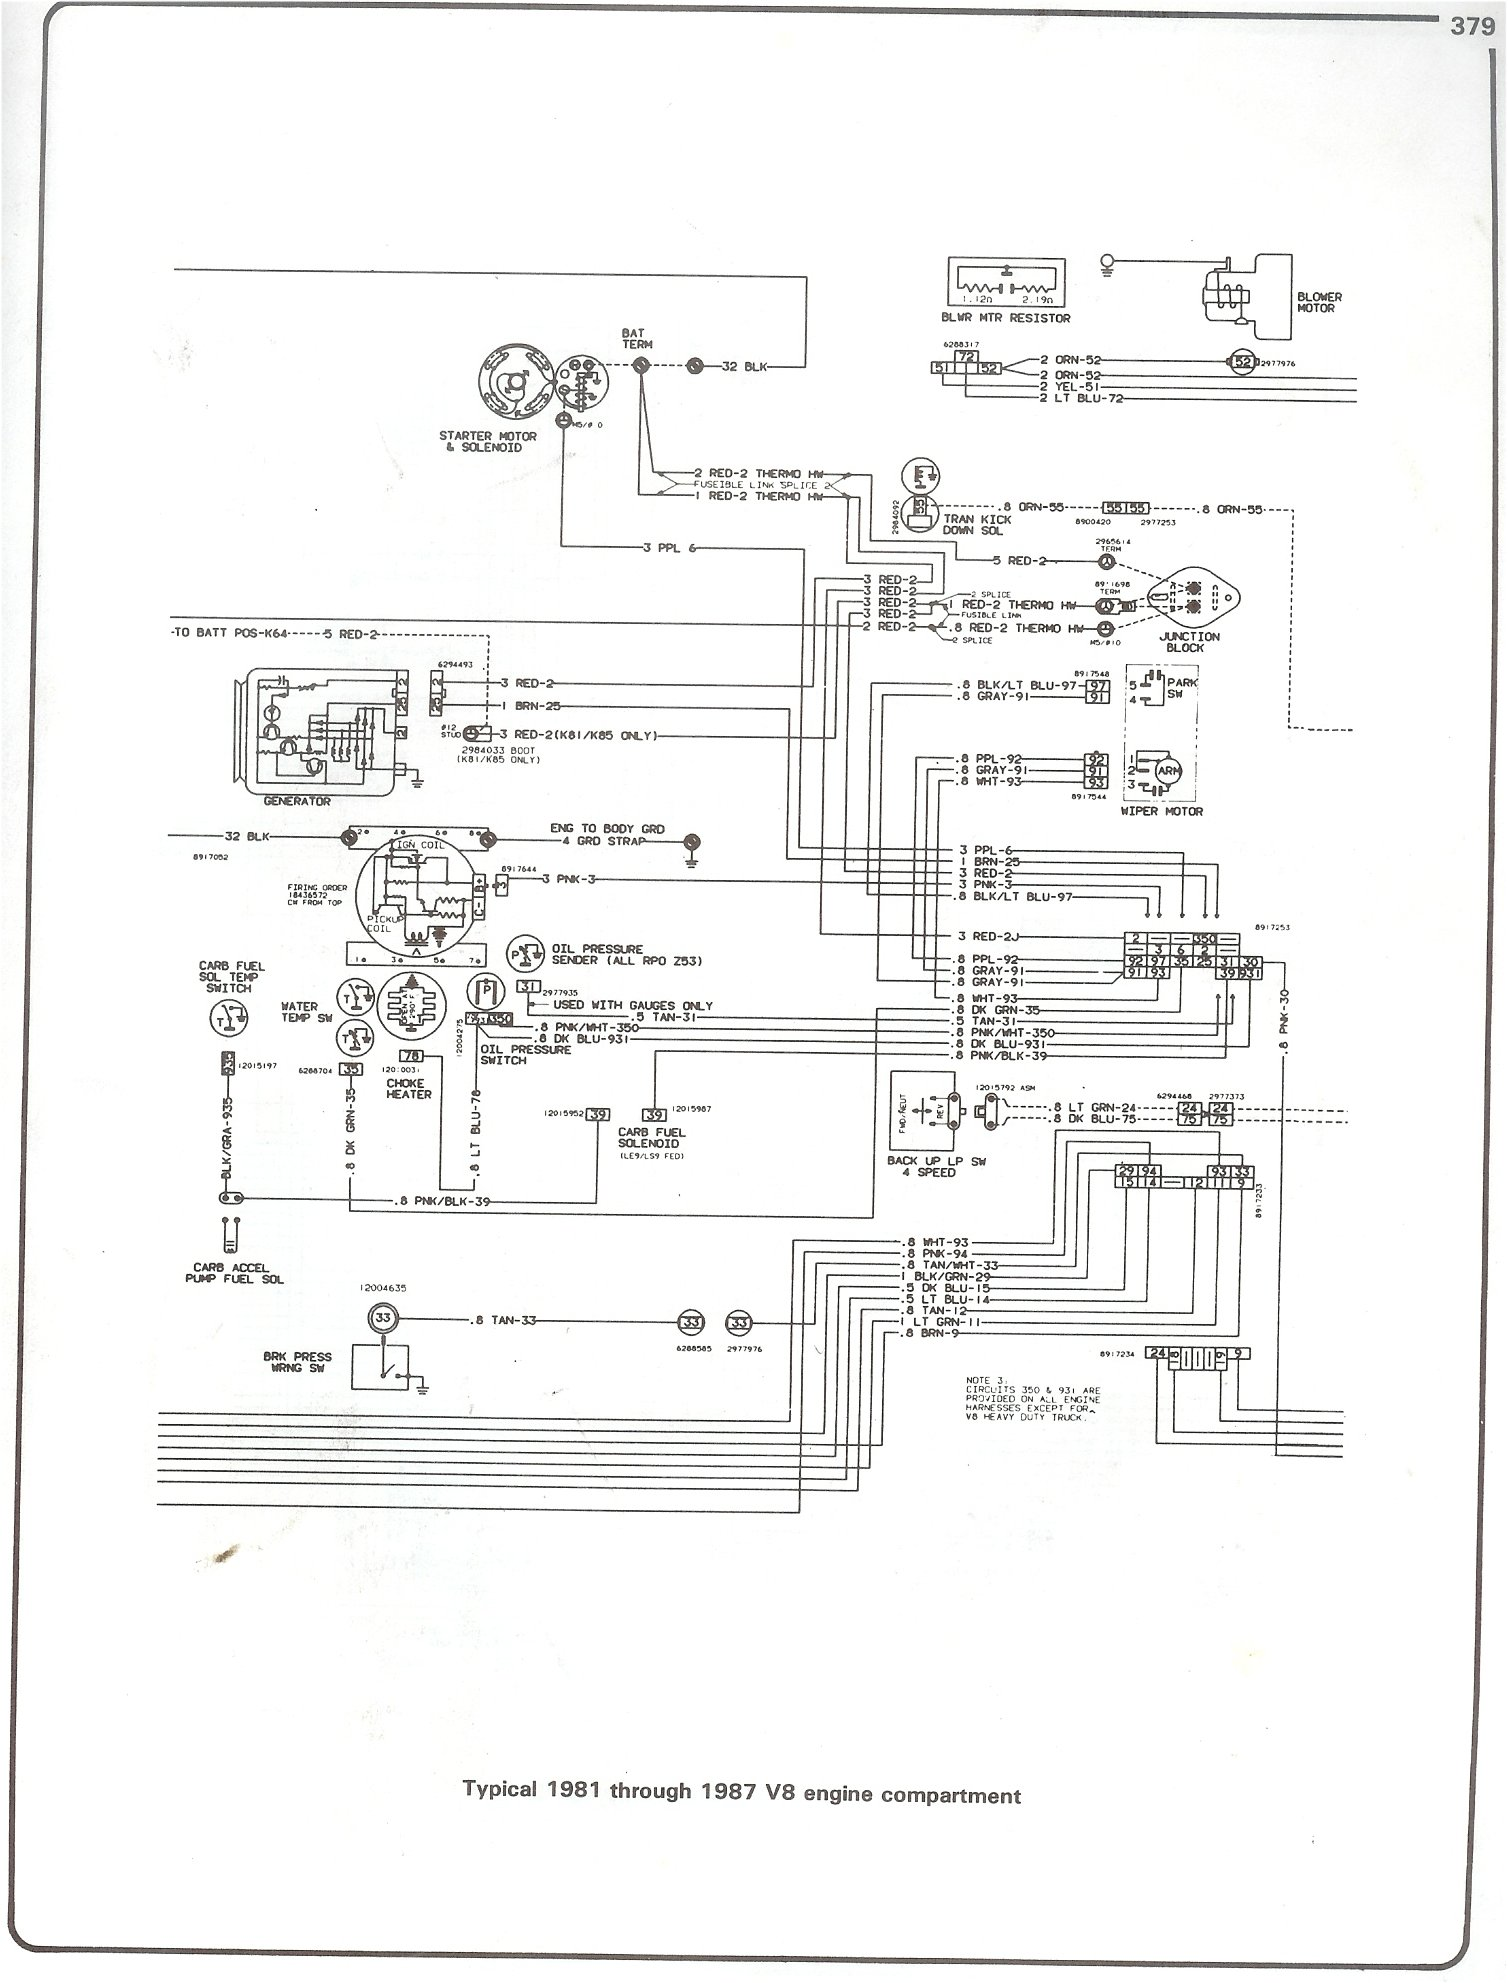 81 87_V8_engine complete 73 87 wiring diagrams  at crackthecode.co